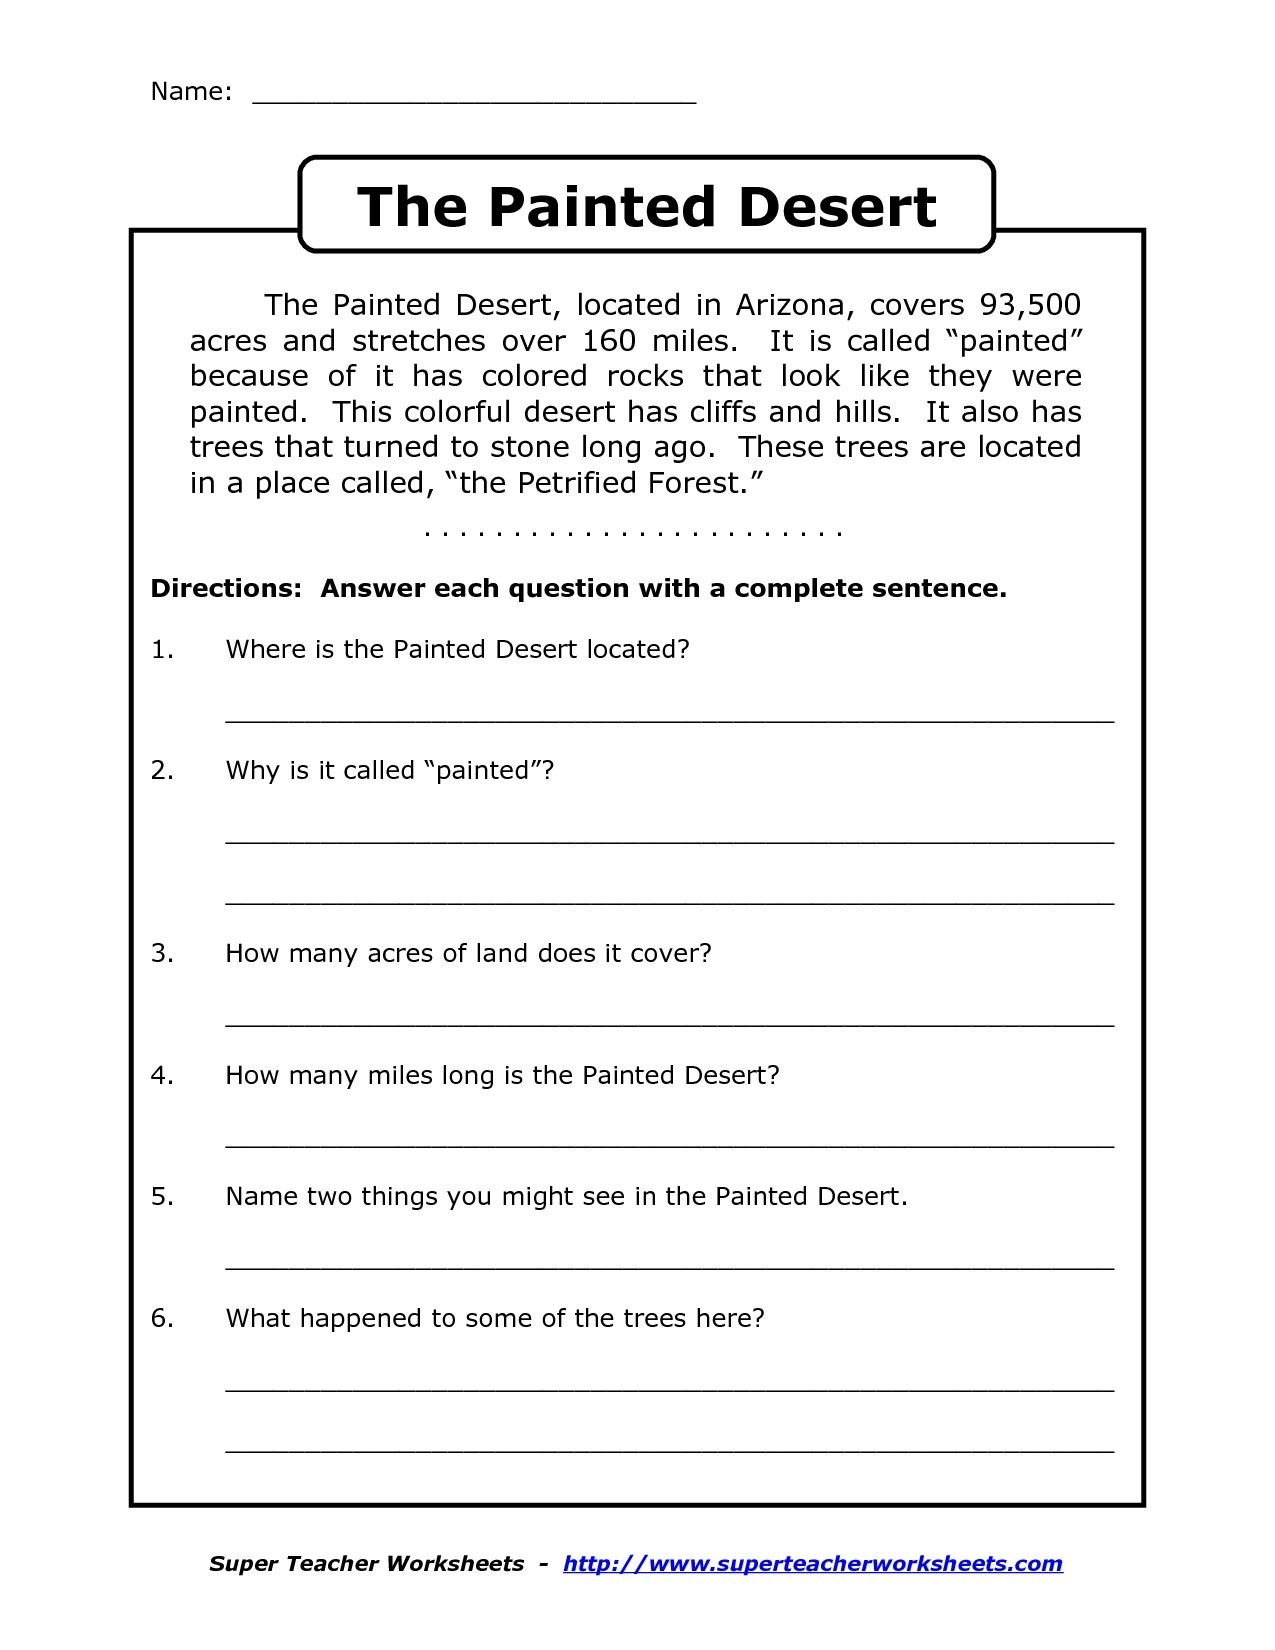 Free Printable Reading Comprehension Worksheets For Adults